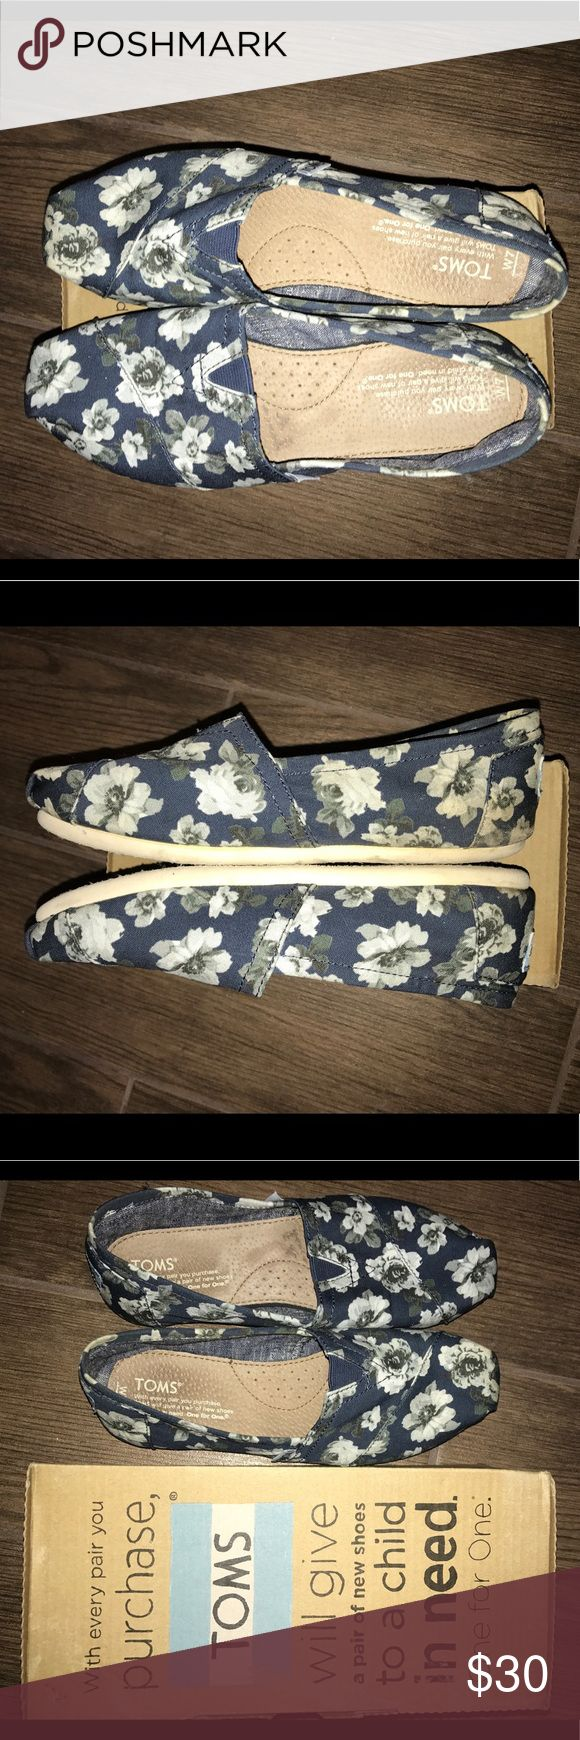 Floral TOMS Women's size 7, like new! Dark Navy floral pattern with white and grey flowers. Very minimal wear can be seen on inside and bottom of shoe. Theses shoes run slim but true to size 7. They will cone with original box (see in photos). $54.00 full price, pattern no longer available Toms Shoes Flats & Loafers